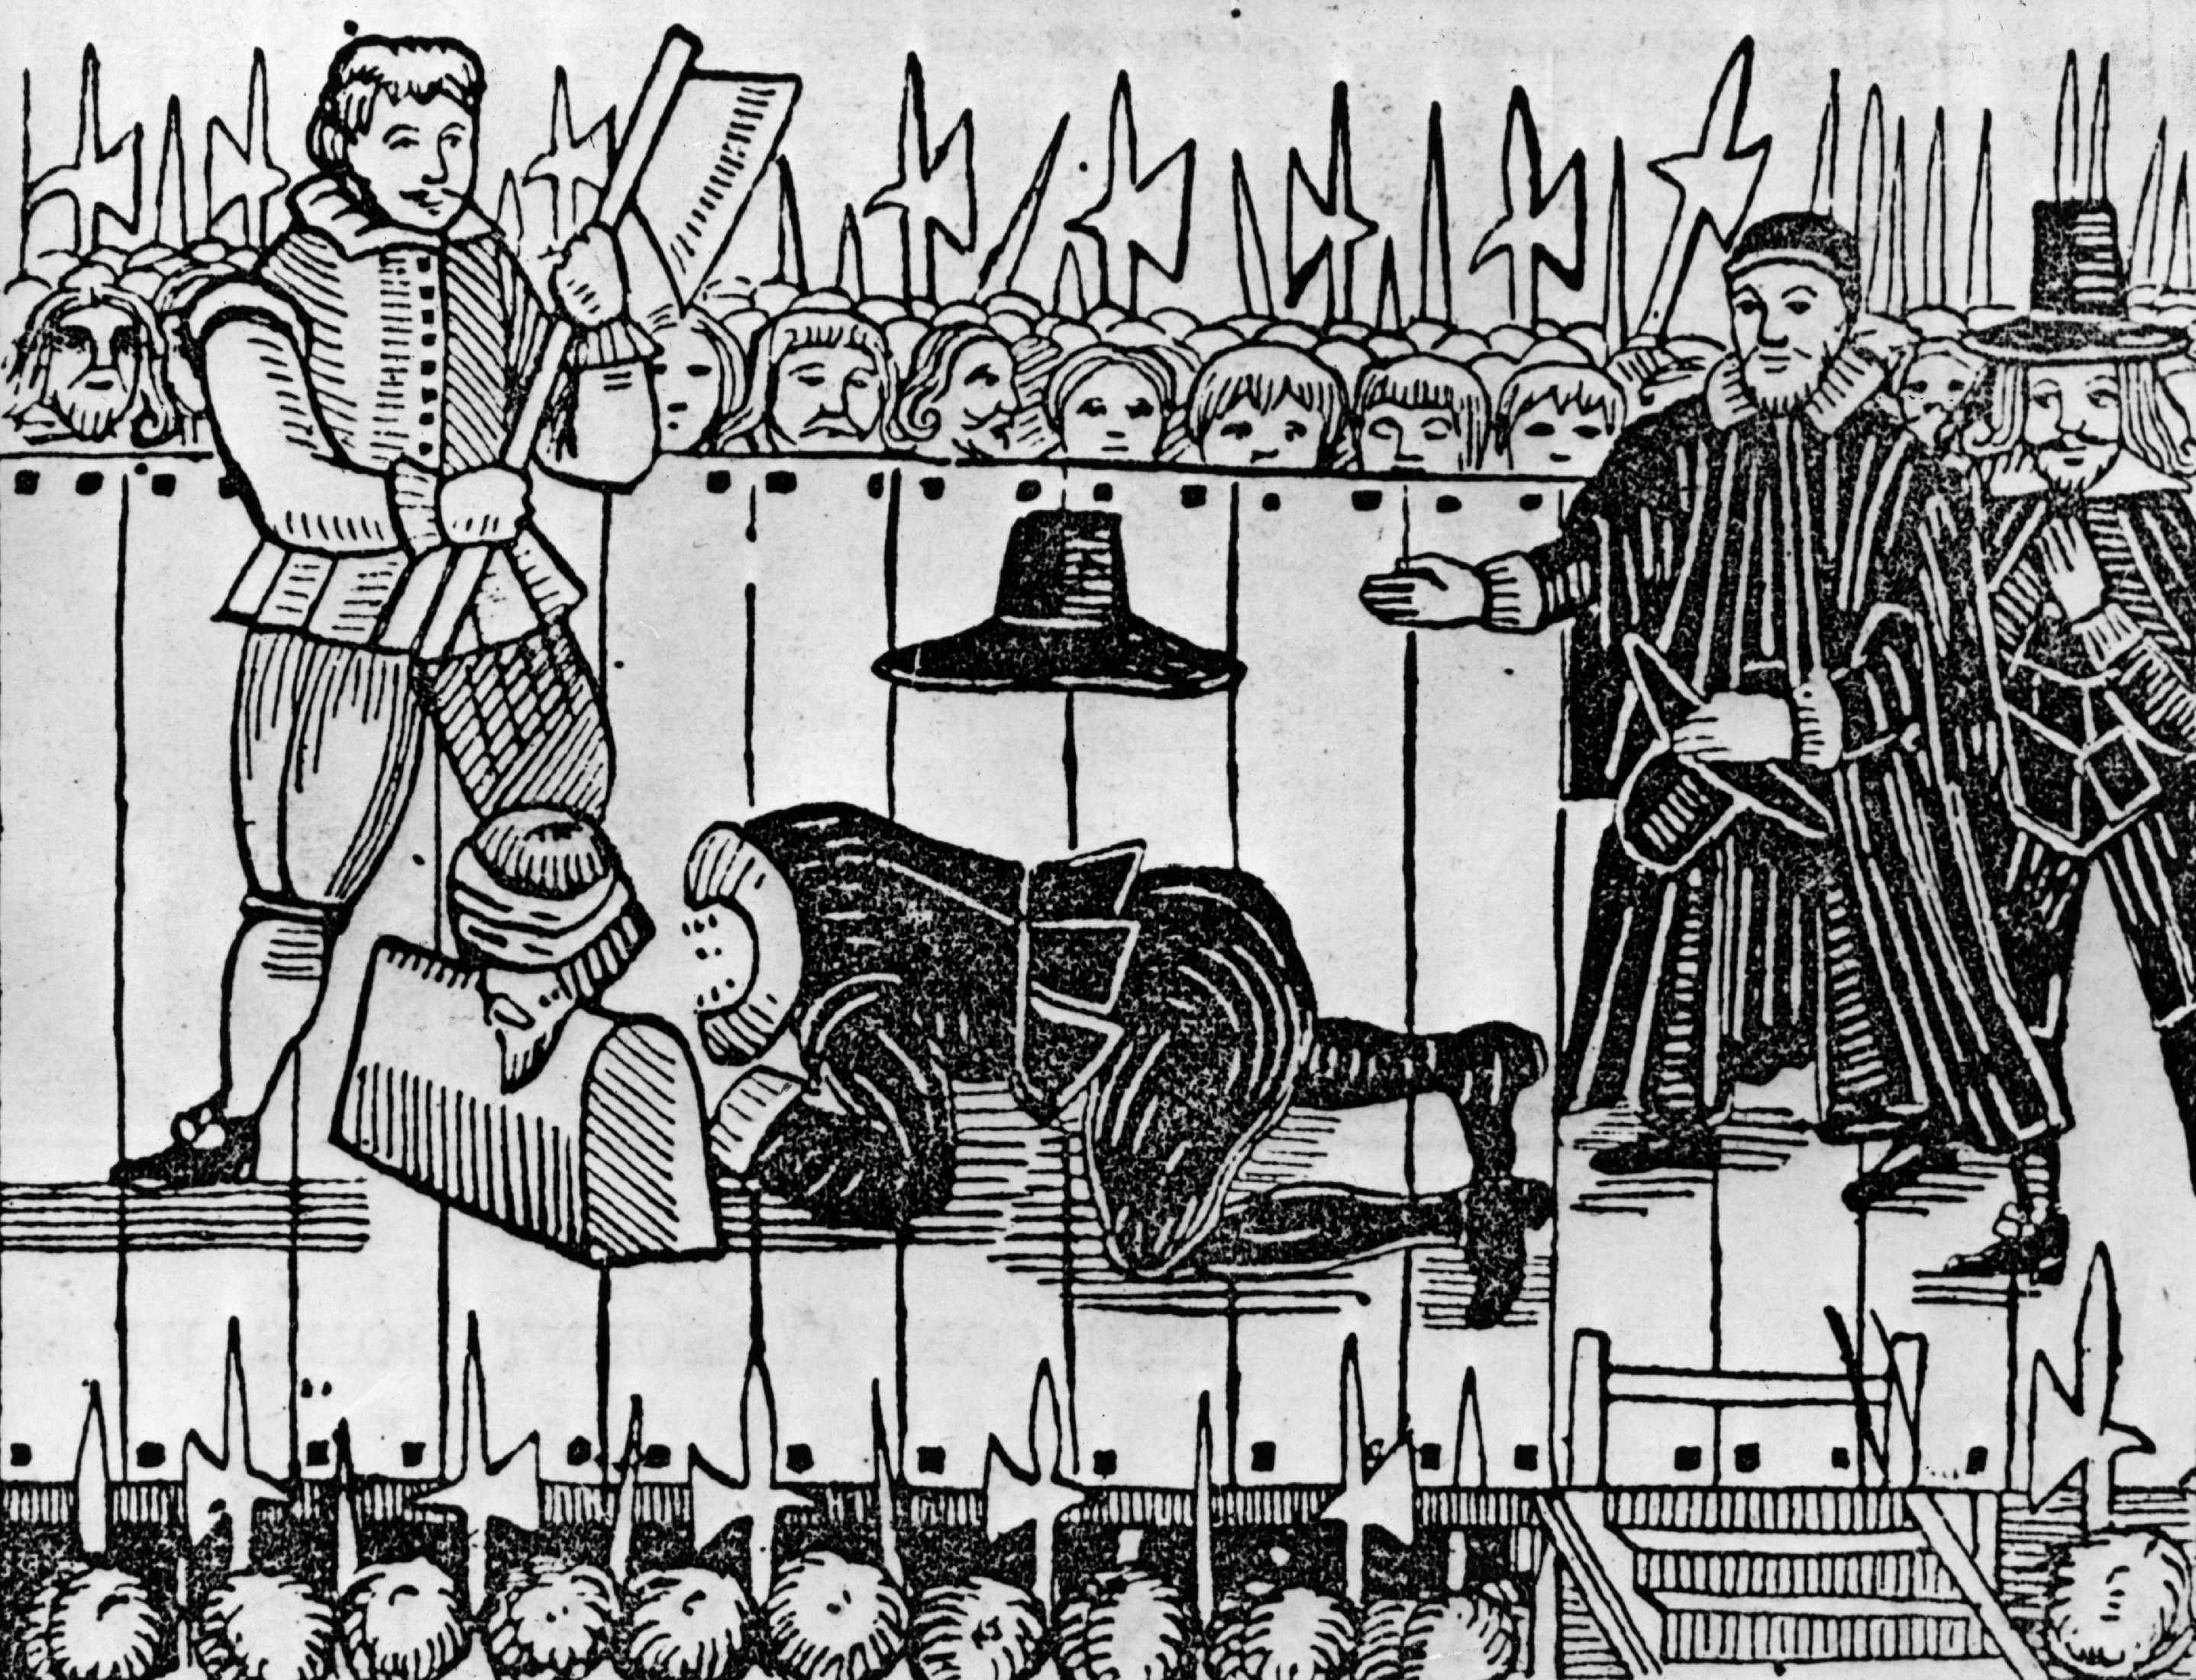 """For those of noble birth who were condemned to die, execution by beheading (which was considered the least brutal method of execution) was used until the 18th century,"" says criminologist and historian Lizzie Seal. This illustration depicts the execution of Charles I in January 1649. (Photo by Hulton Archive/Getty Images)"